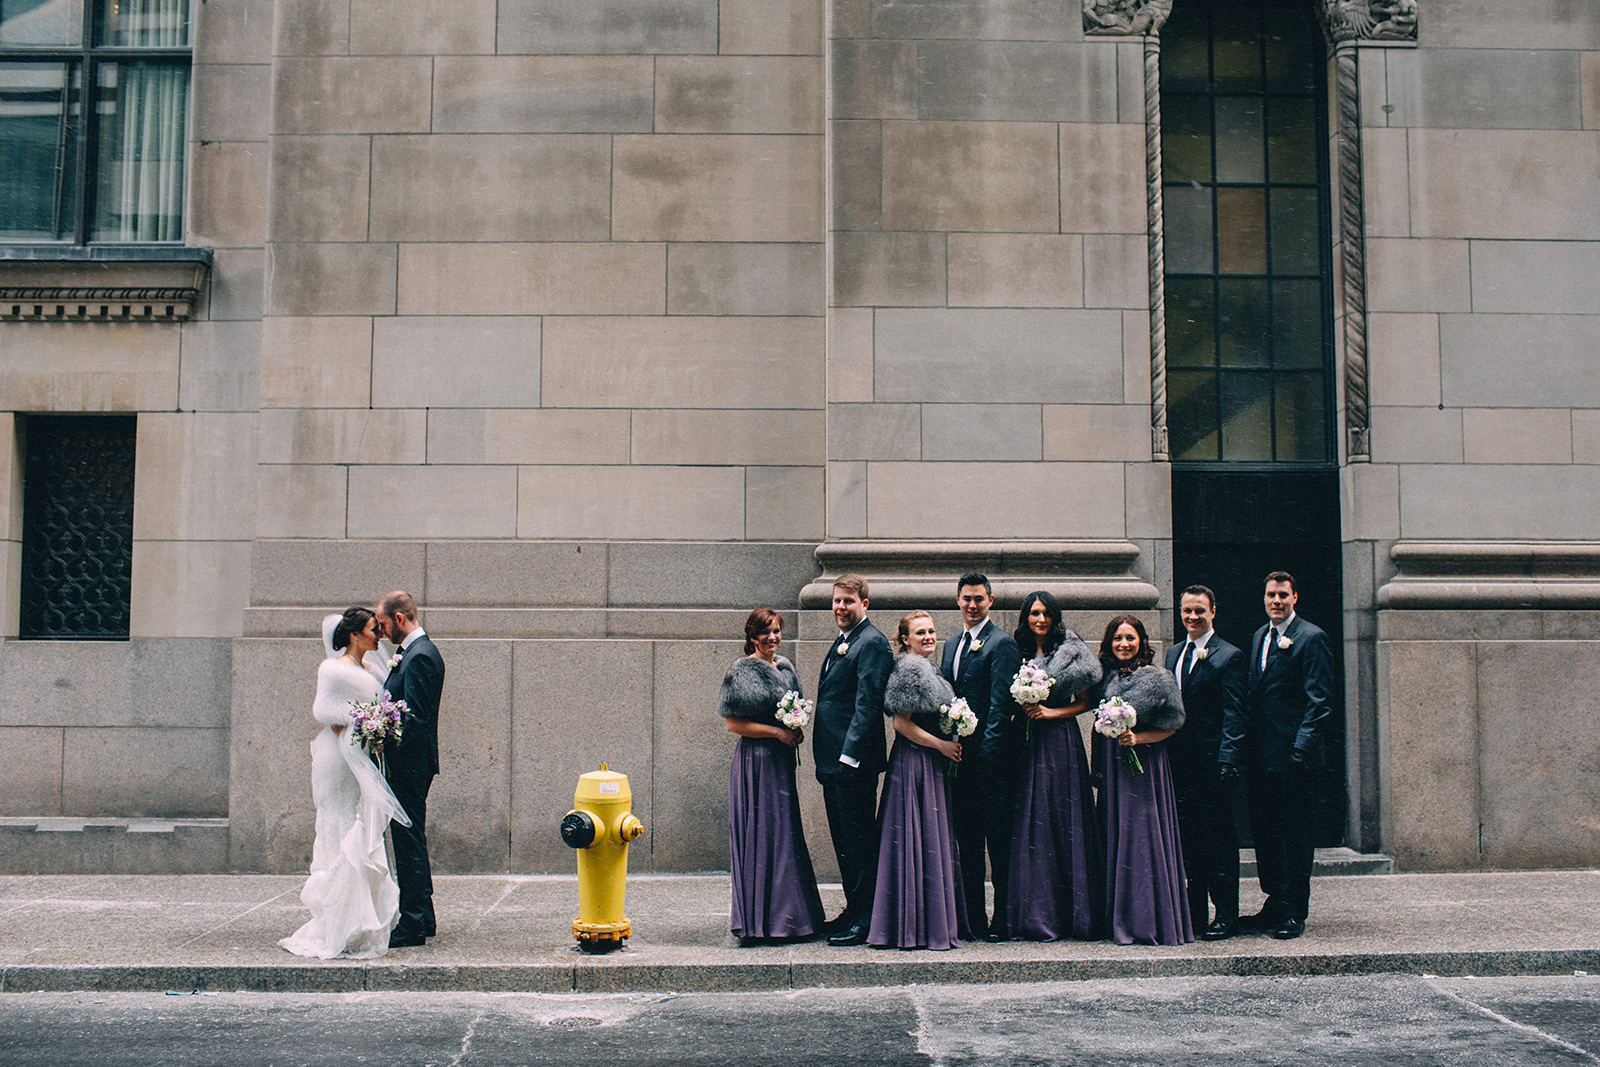 One-King-West-Toronto-wedding-photography_Sam-Wong-of-Visual-Cravings_KnR-16